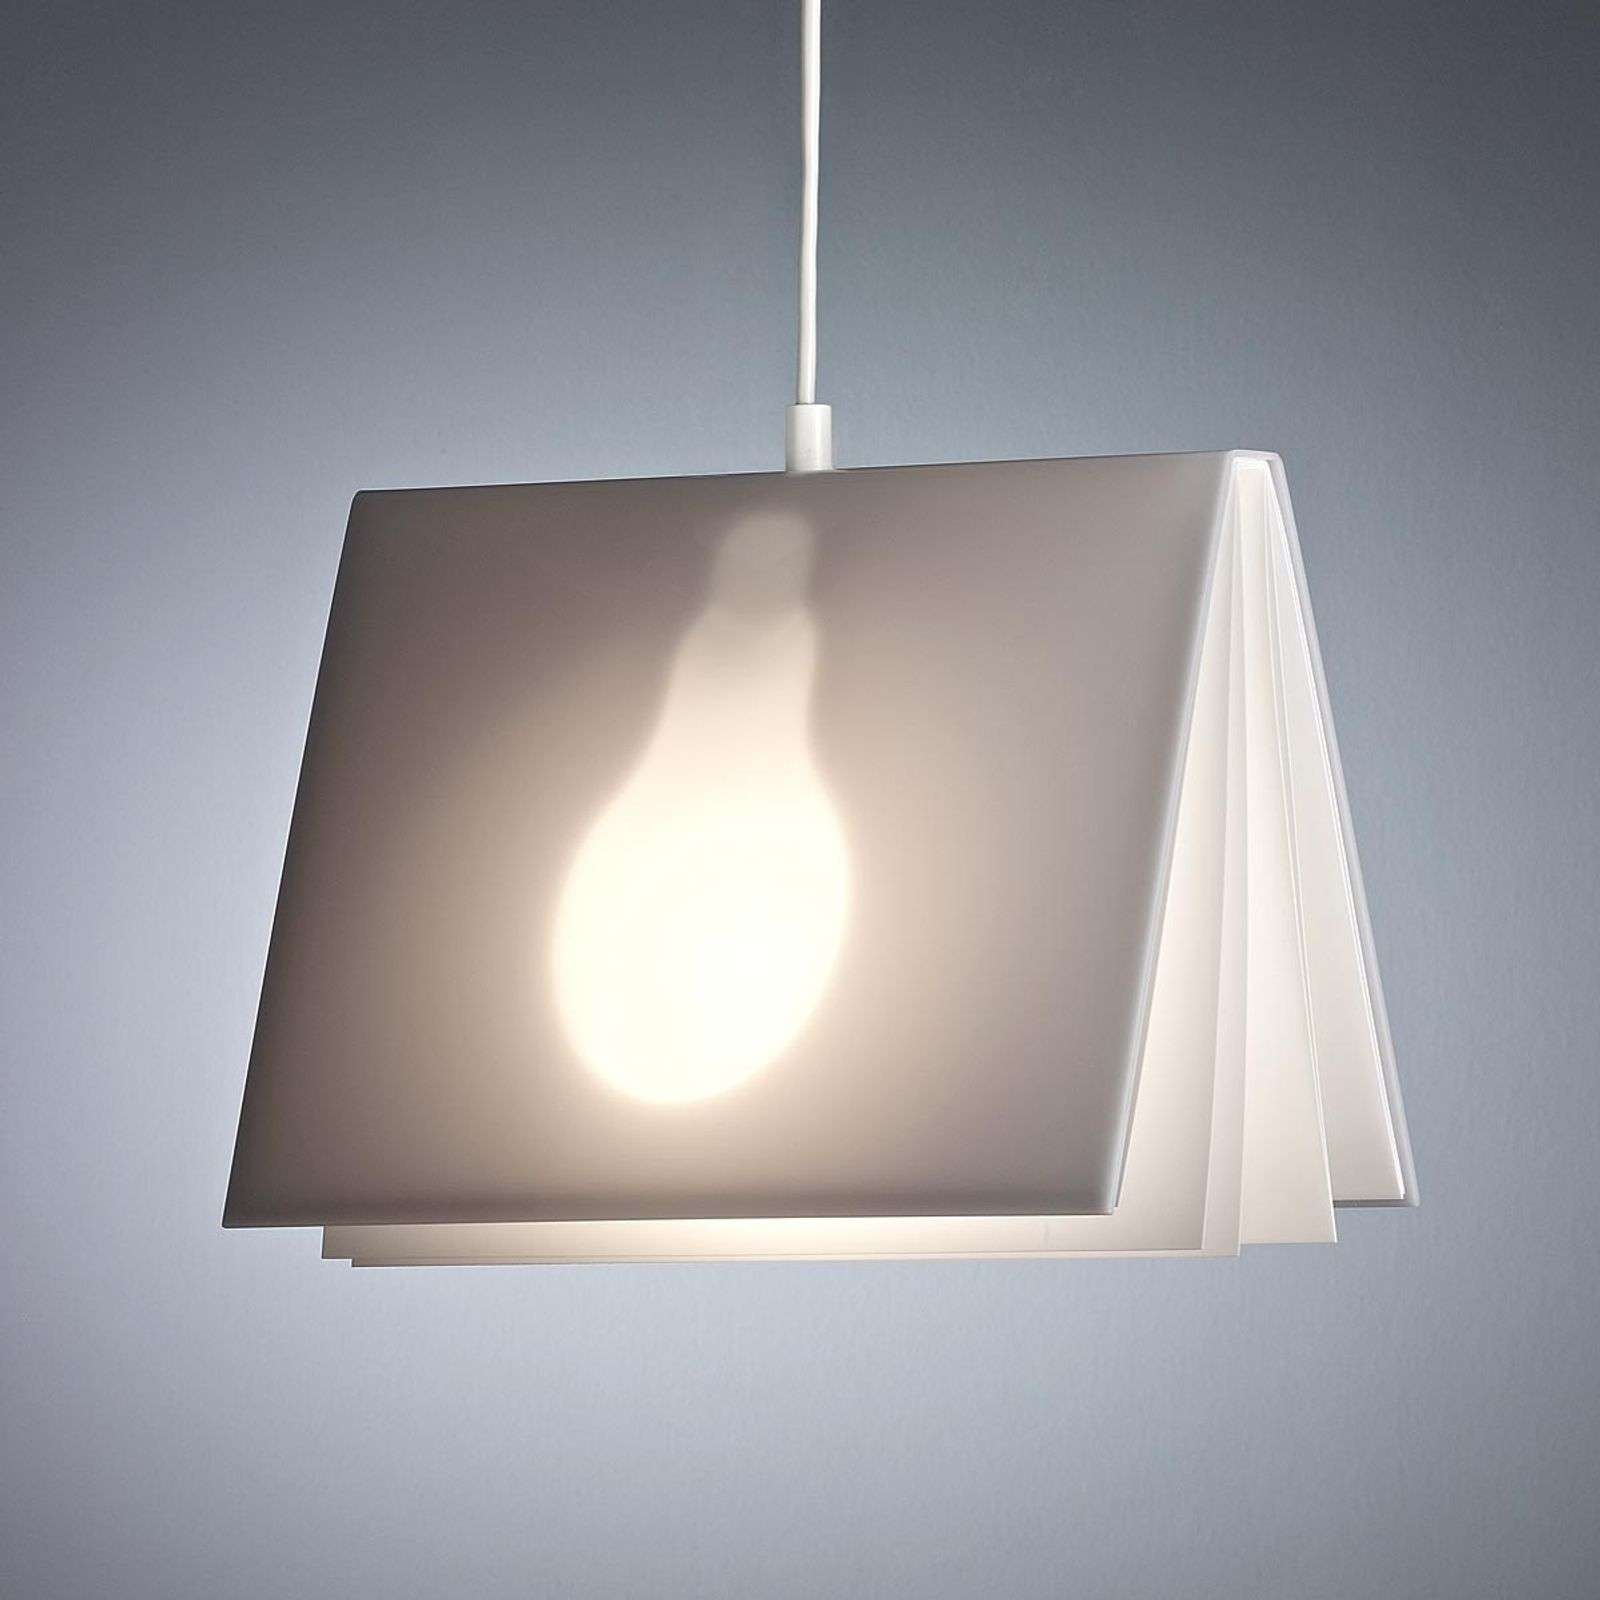 Pendellamp Booklight van Vincenz Warnke